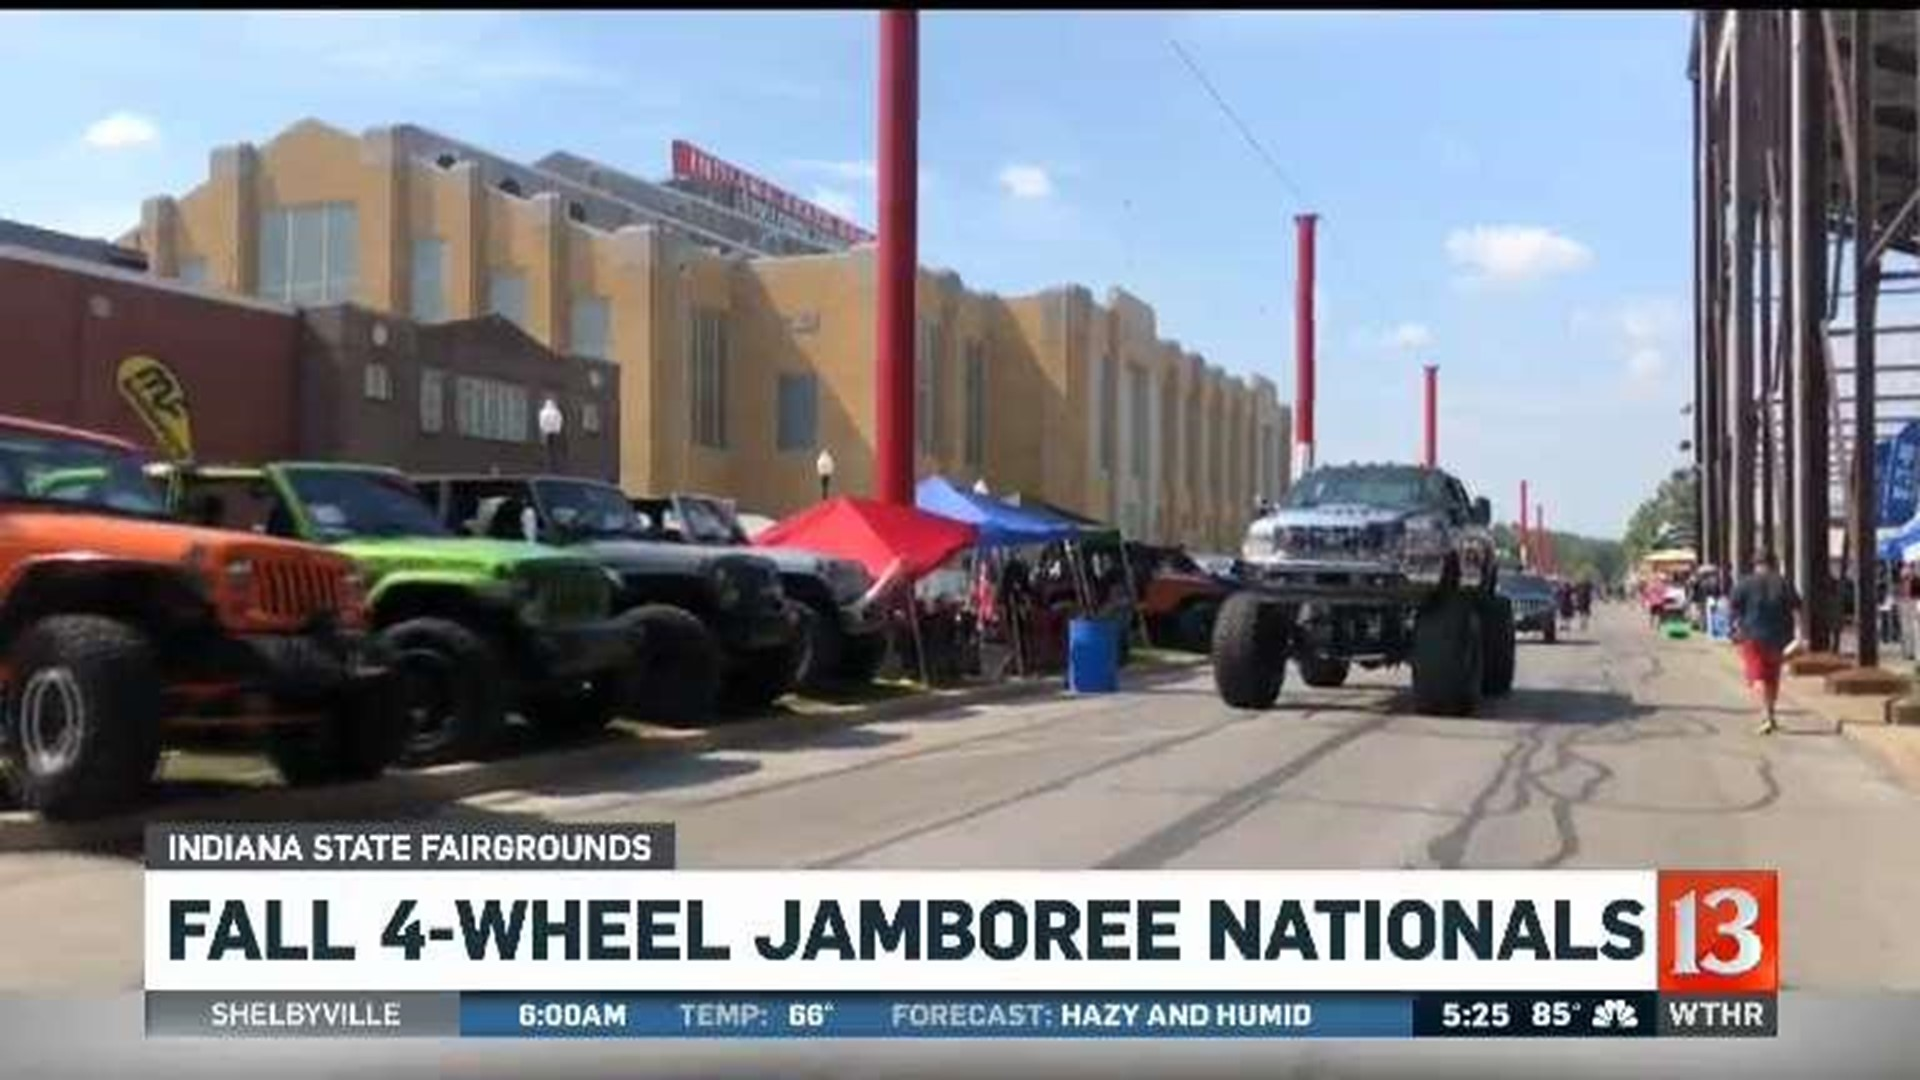 Indy S Four Wheel Jamboree Is Granddaddy Of Truck Events Wthr Com